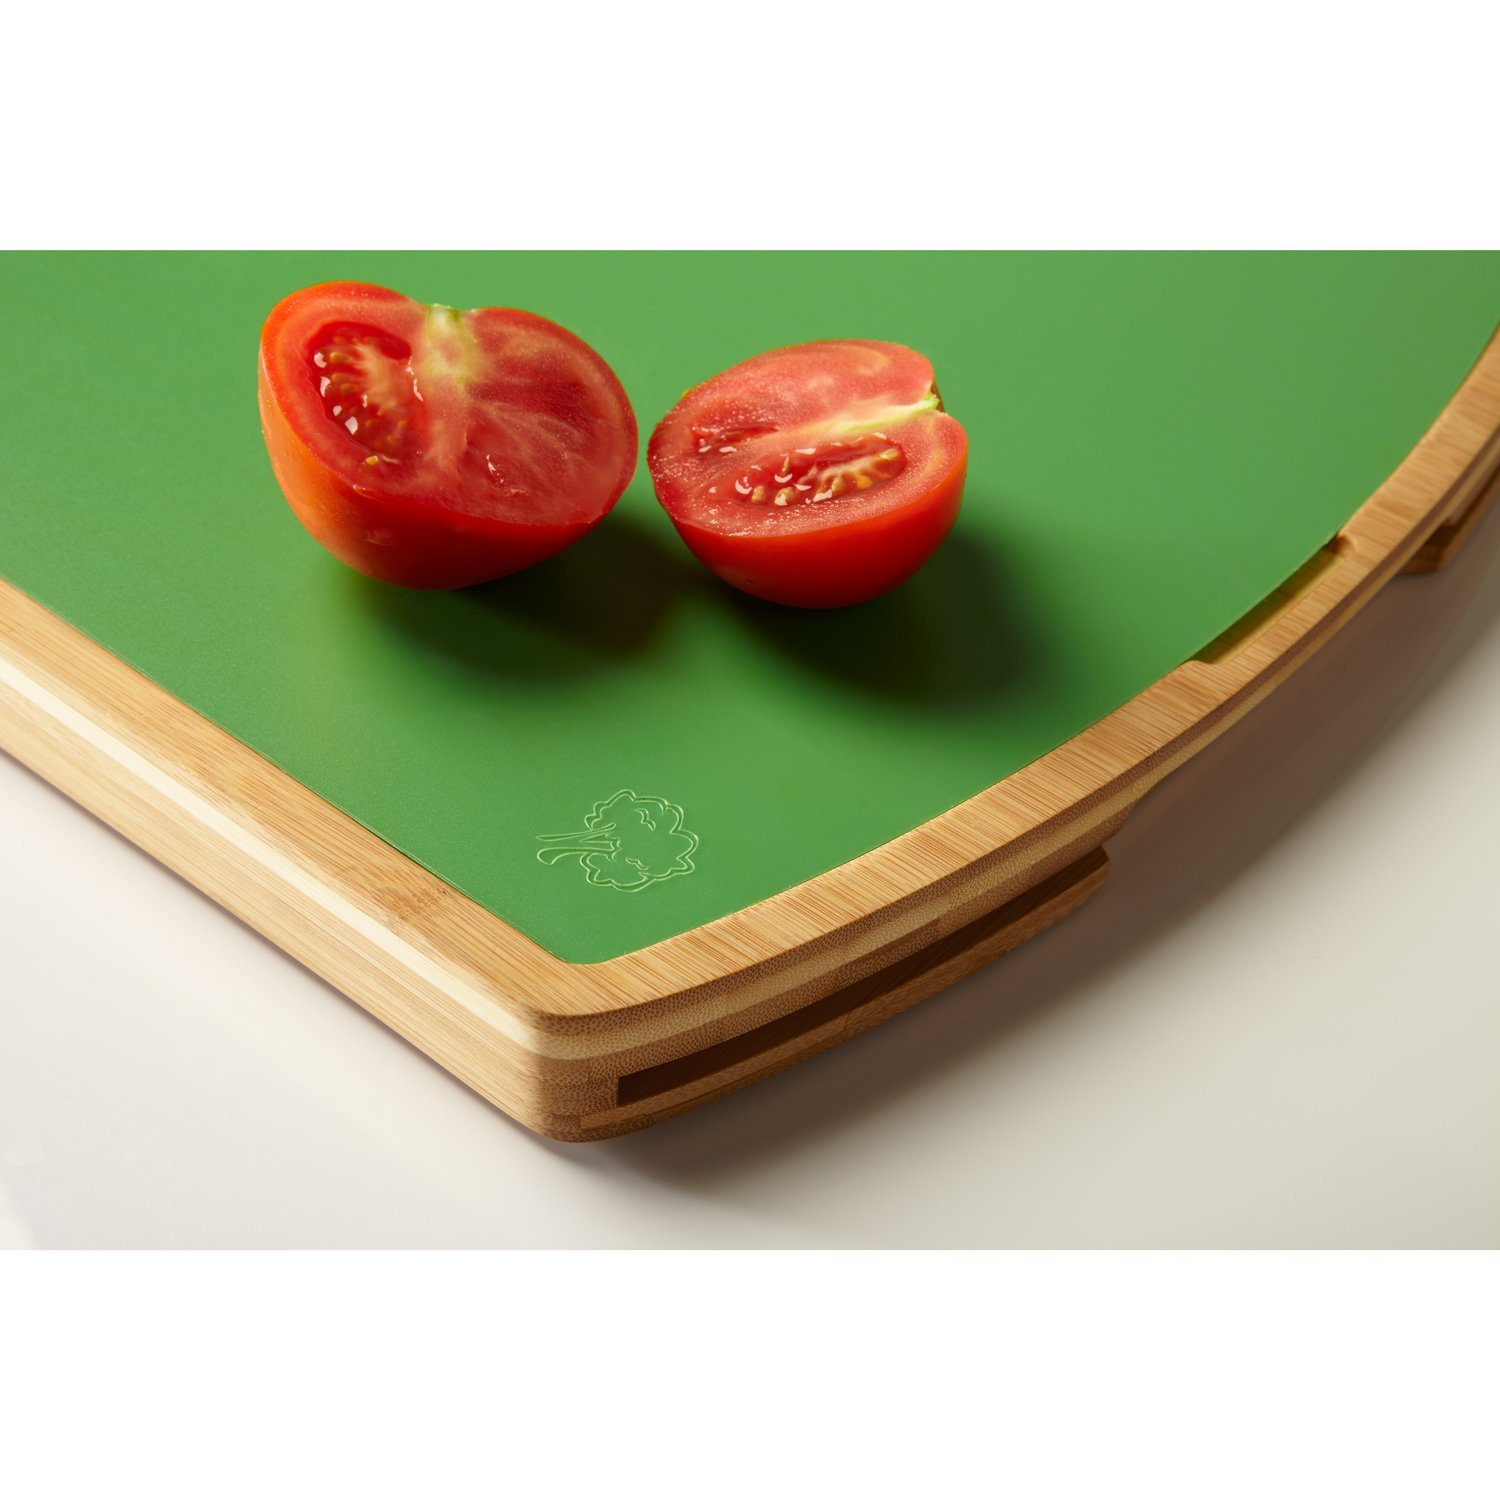 Seville Classics Easy-to-Clean Two-Tone Bamboo Cutting Board with Juice Well and 5 Color-Coded Flexible Cutting Mats